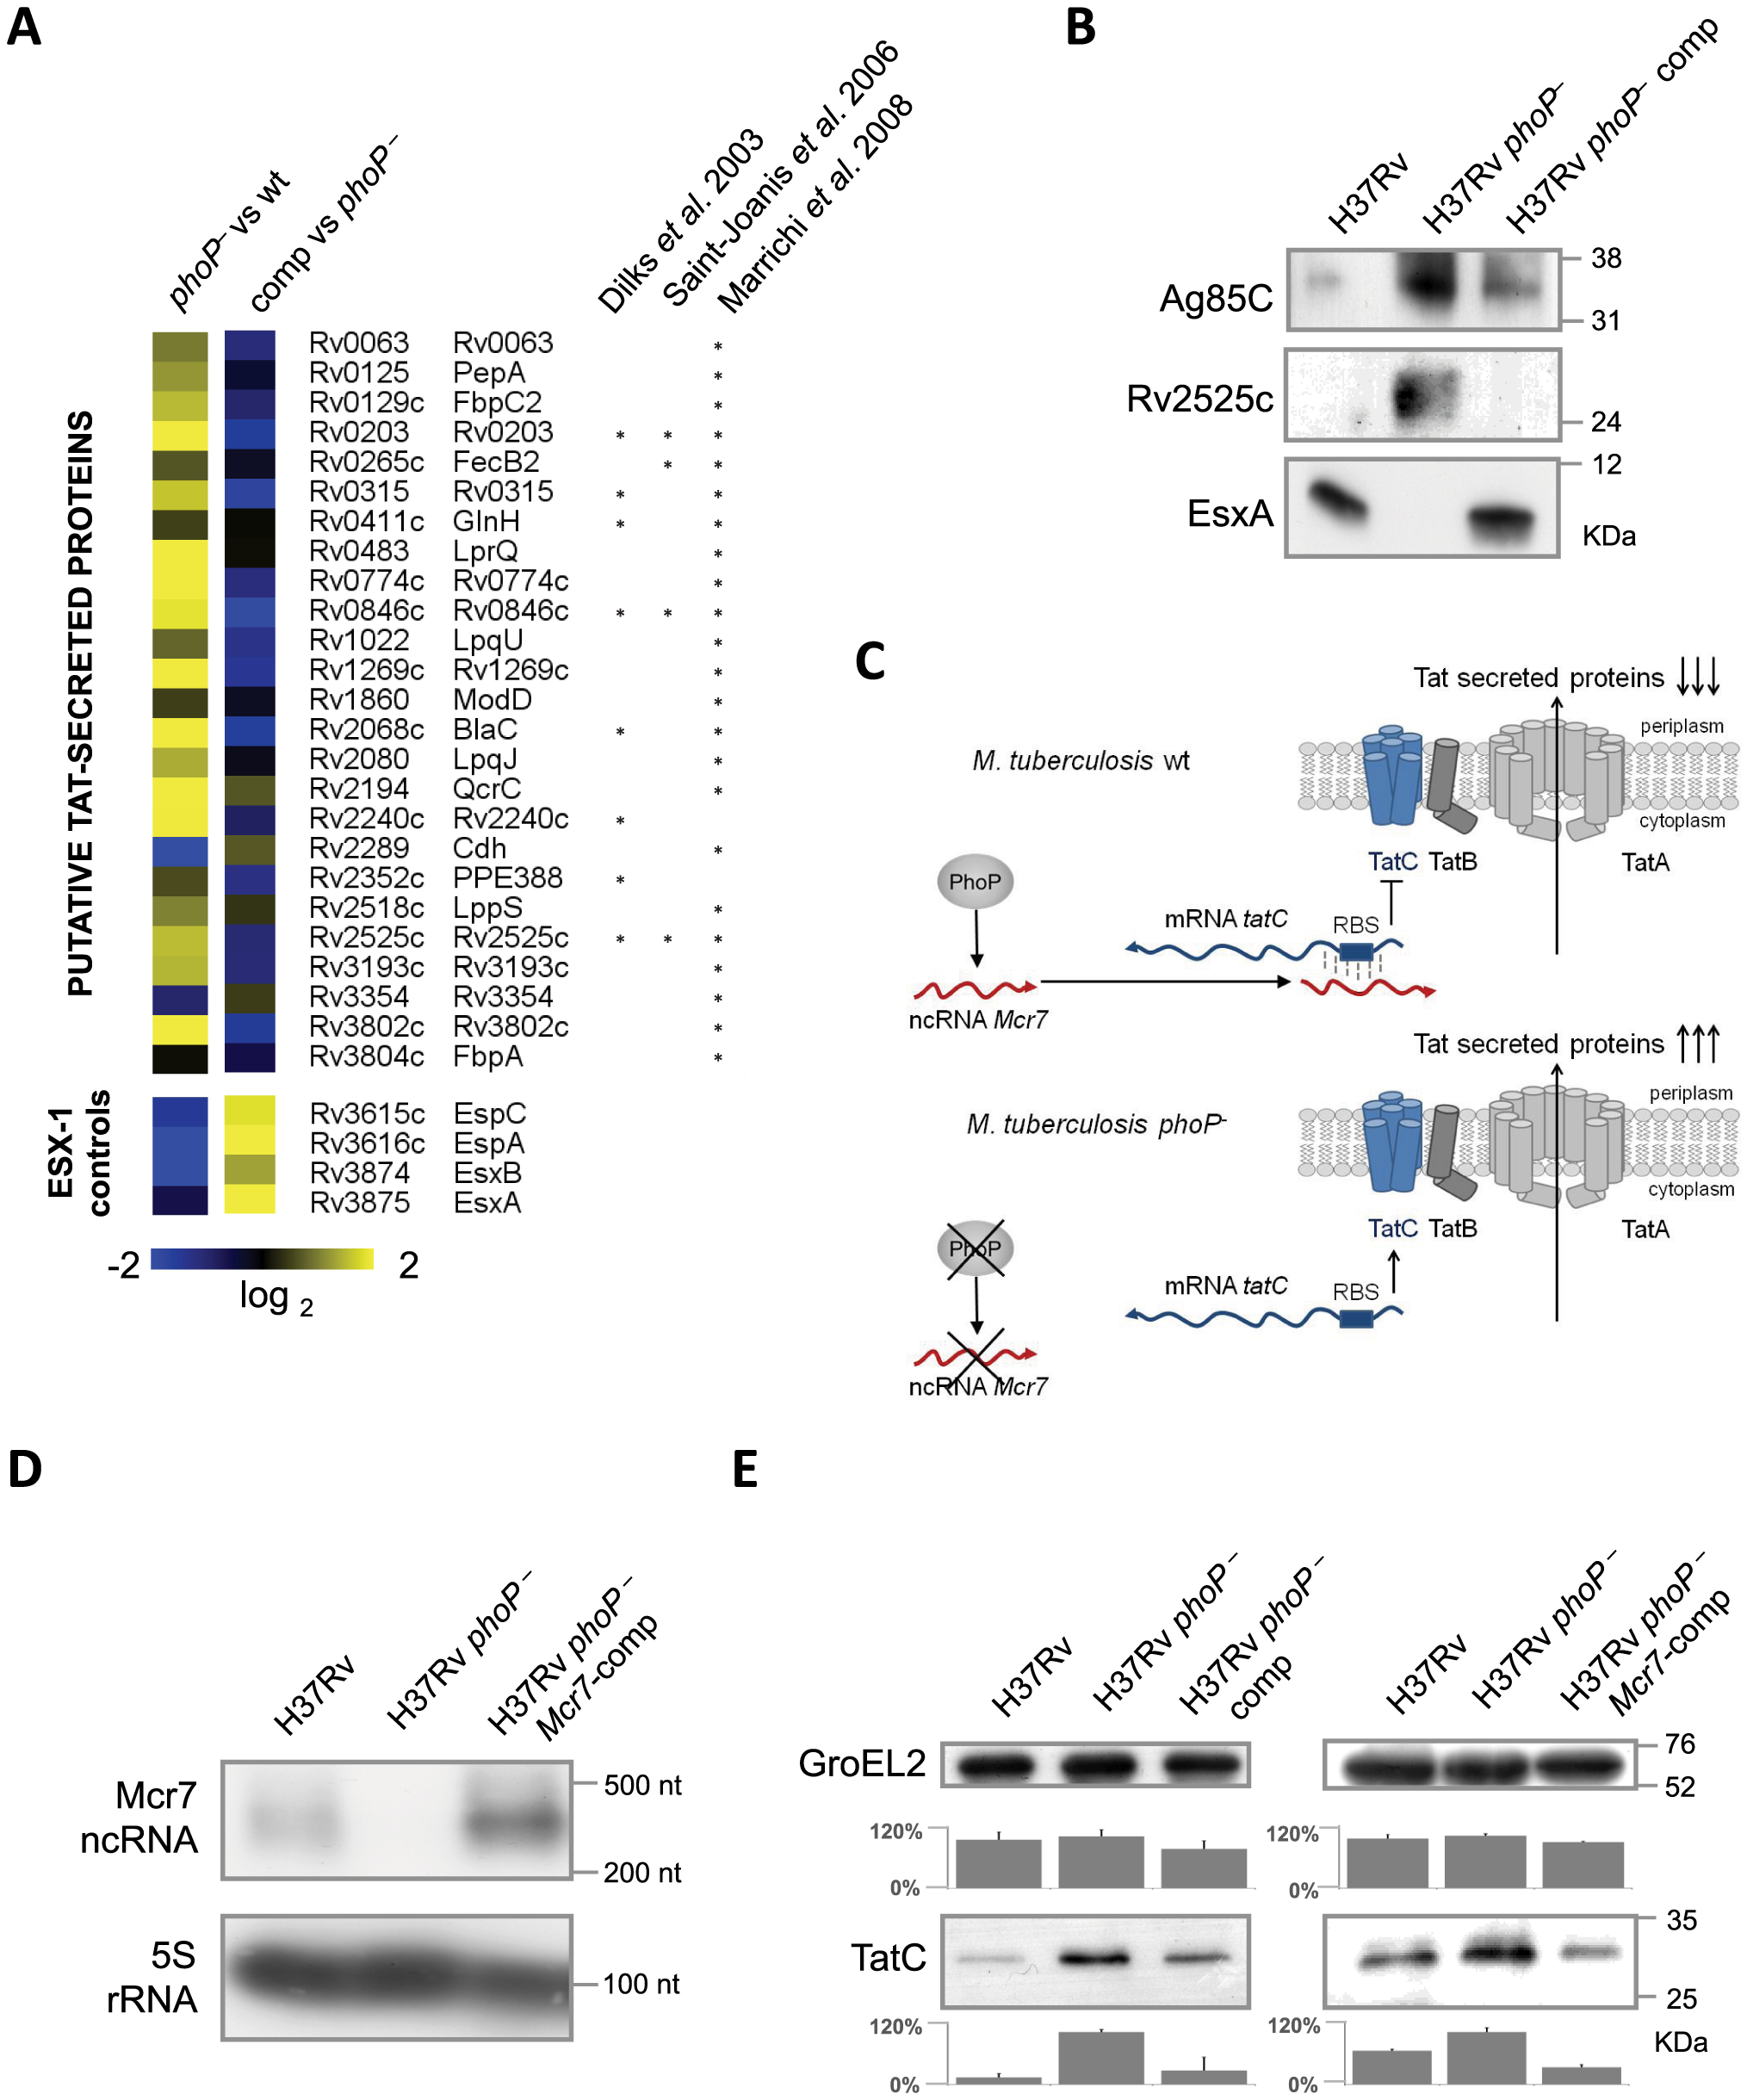 Analysis of the <i>M. tuberculosis</i> secretome identifies a high proportion of Tat substrates enriched in the <i>M. tuberculosis phoP</i> mutant.